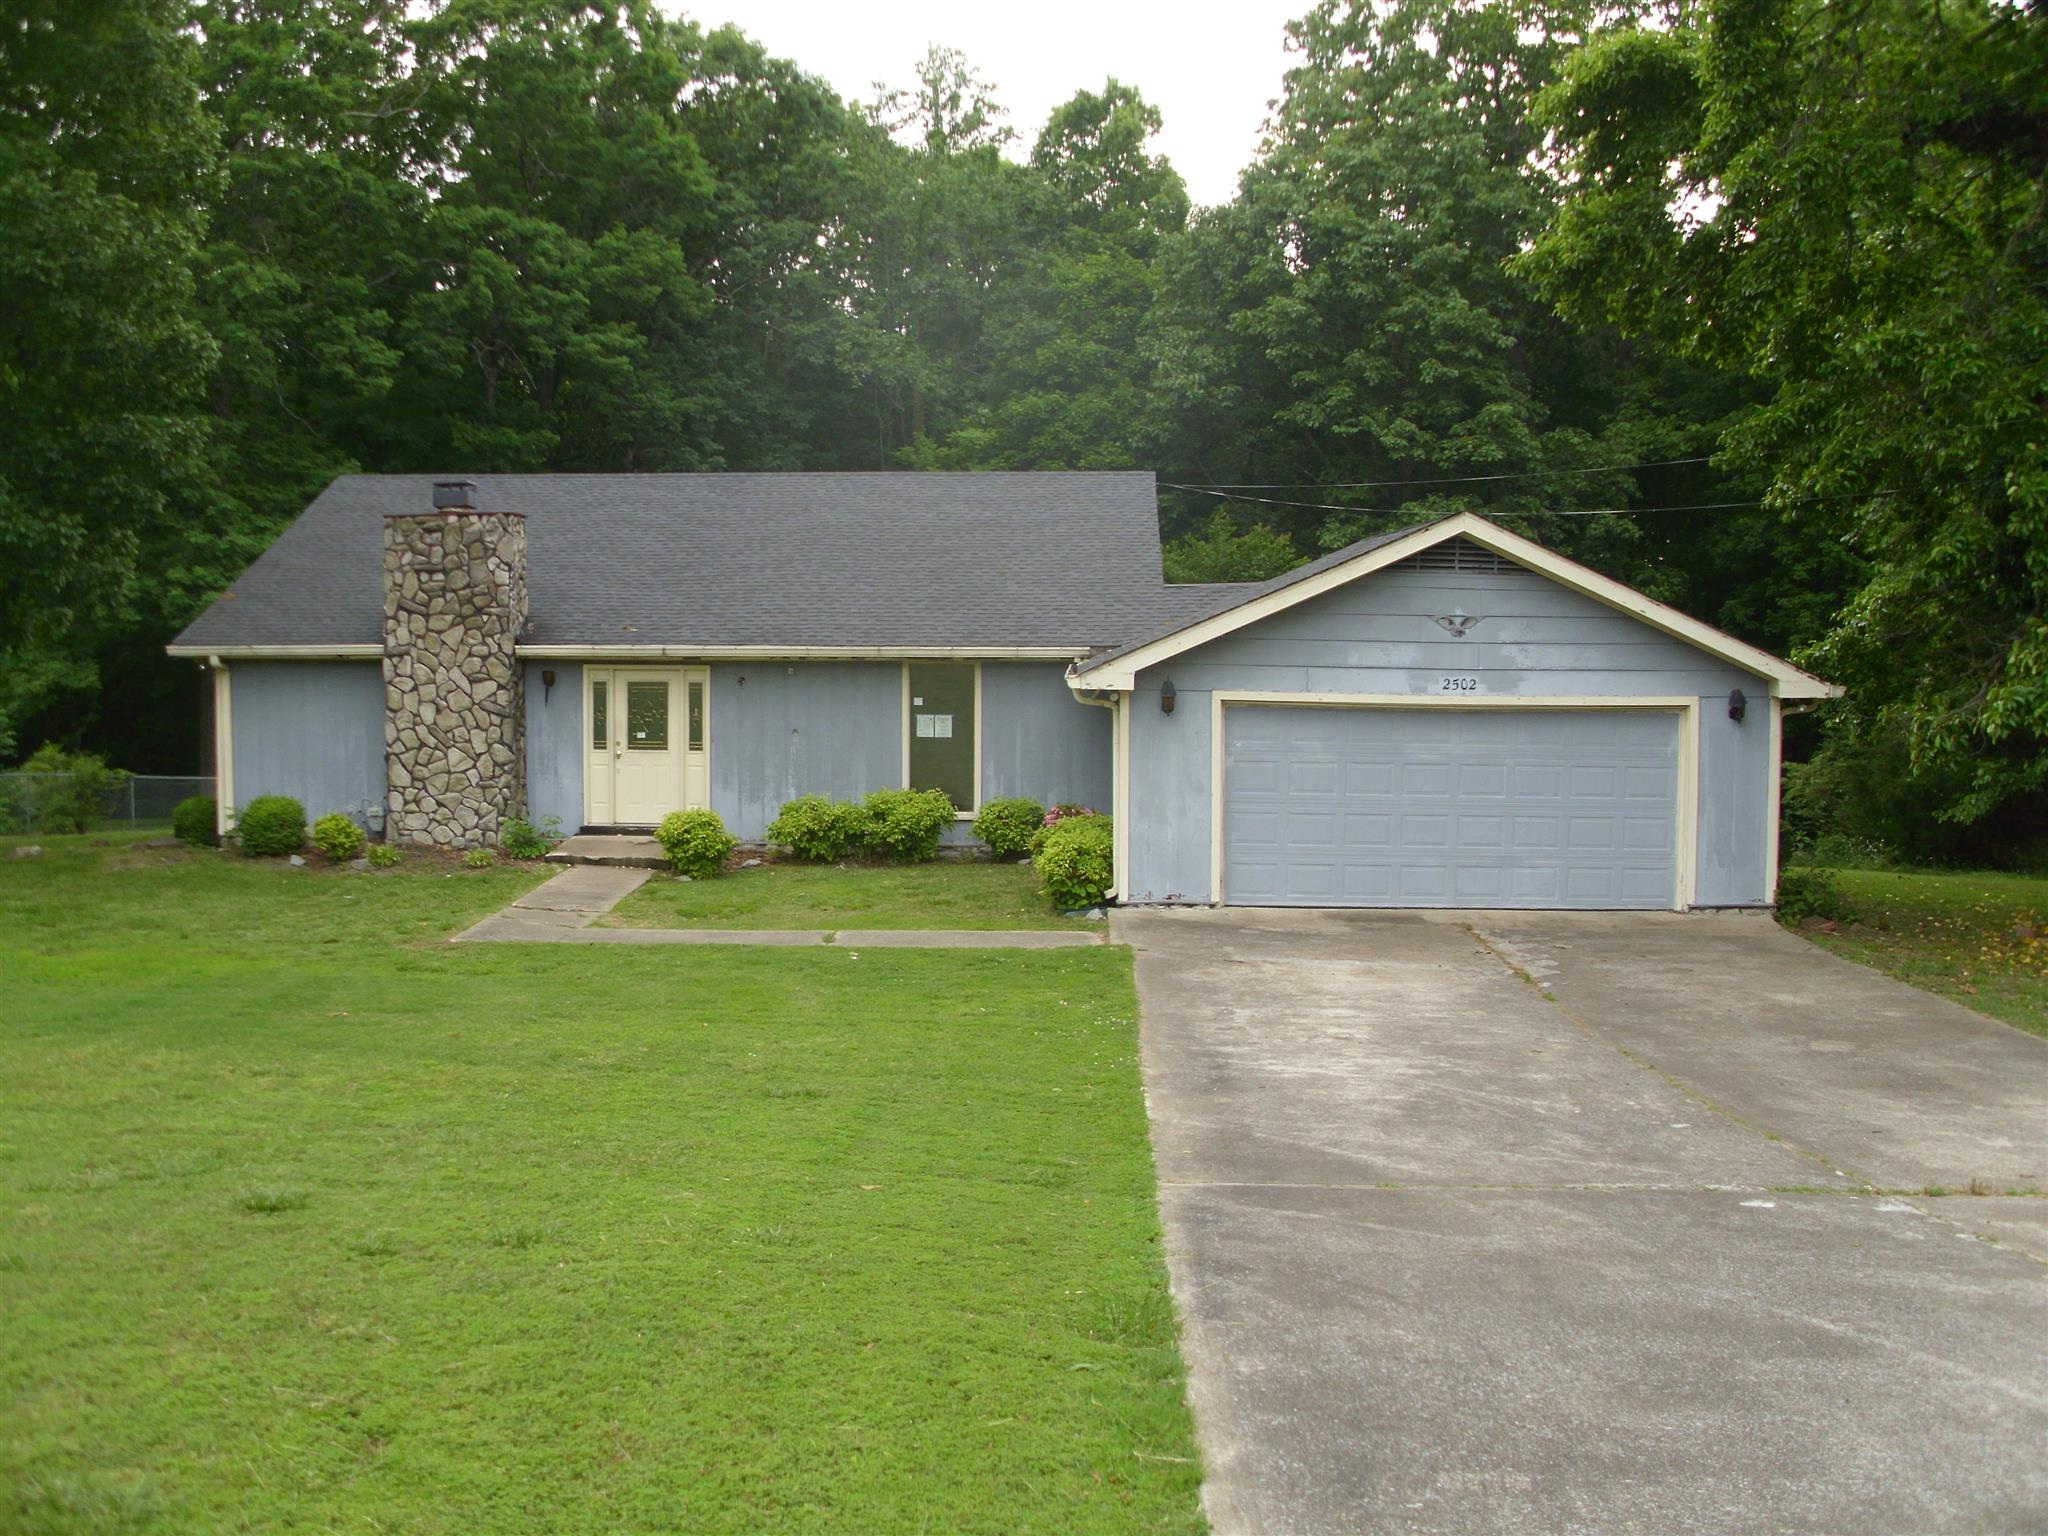 2502 Barwood Dr, Greenbrier, TN 37073